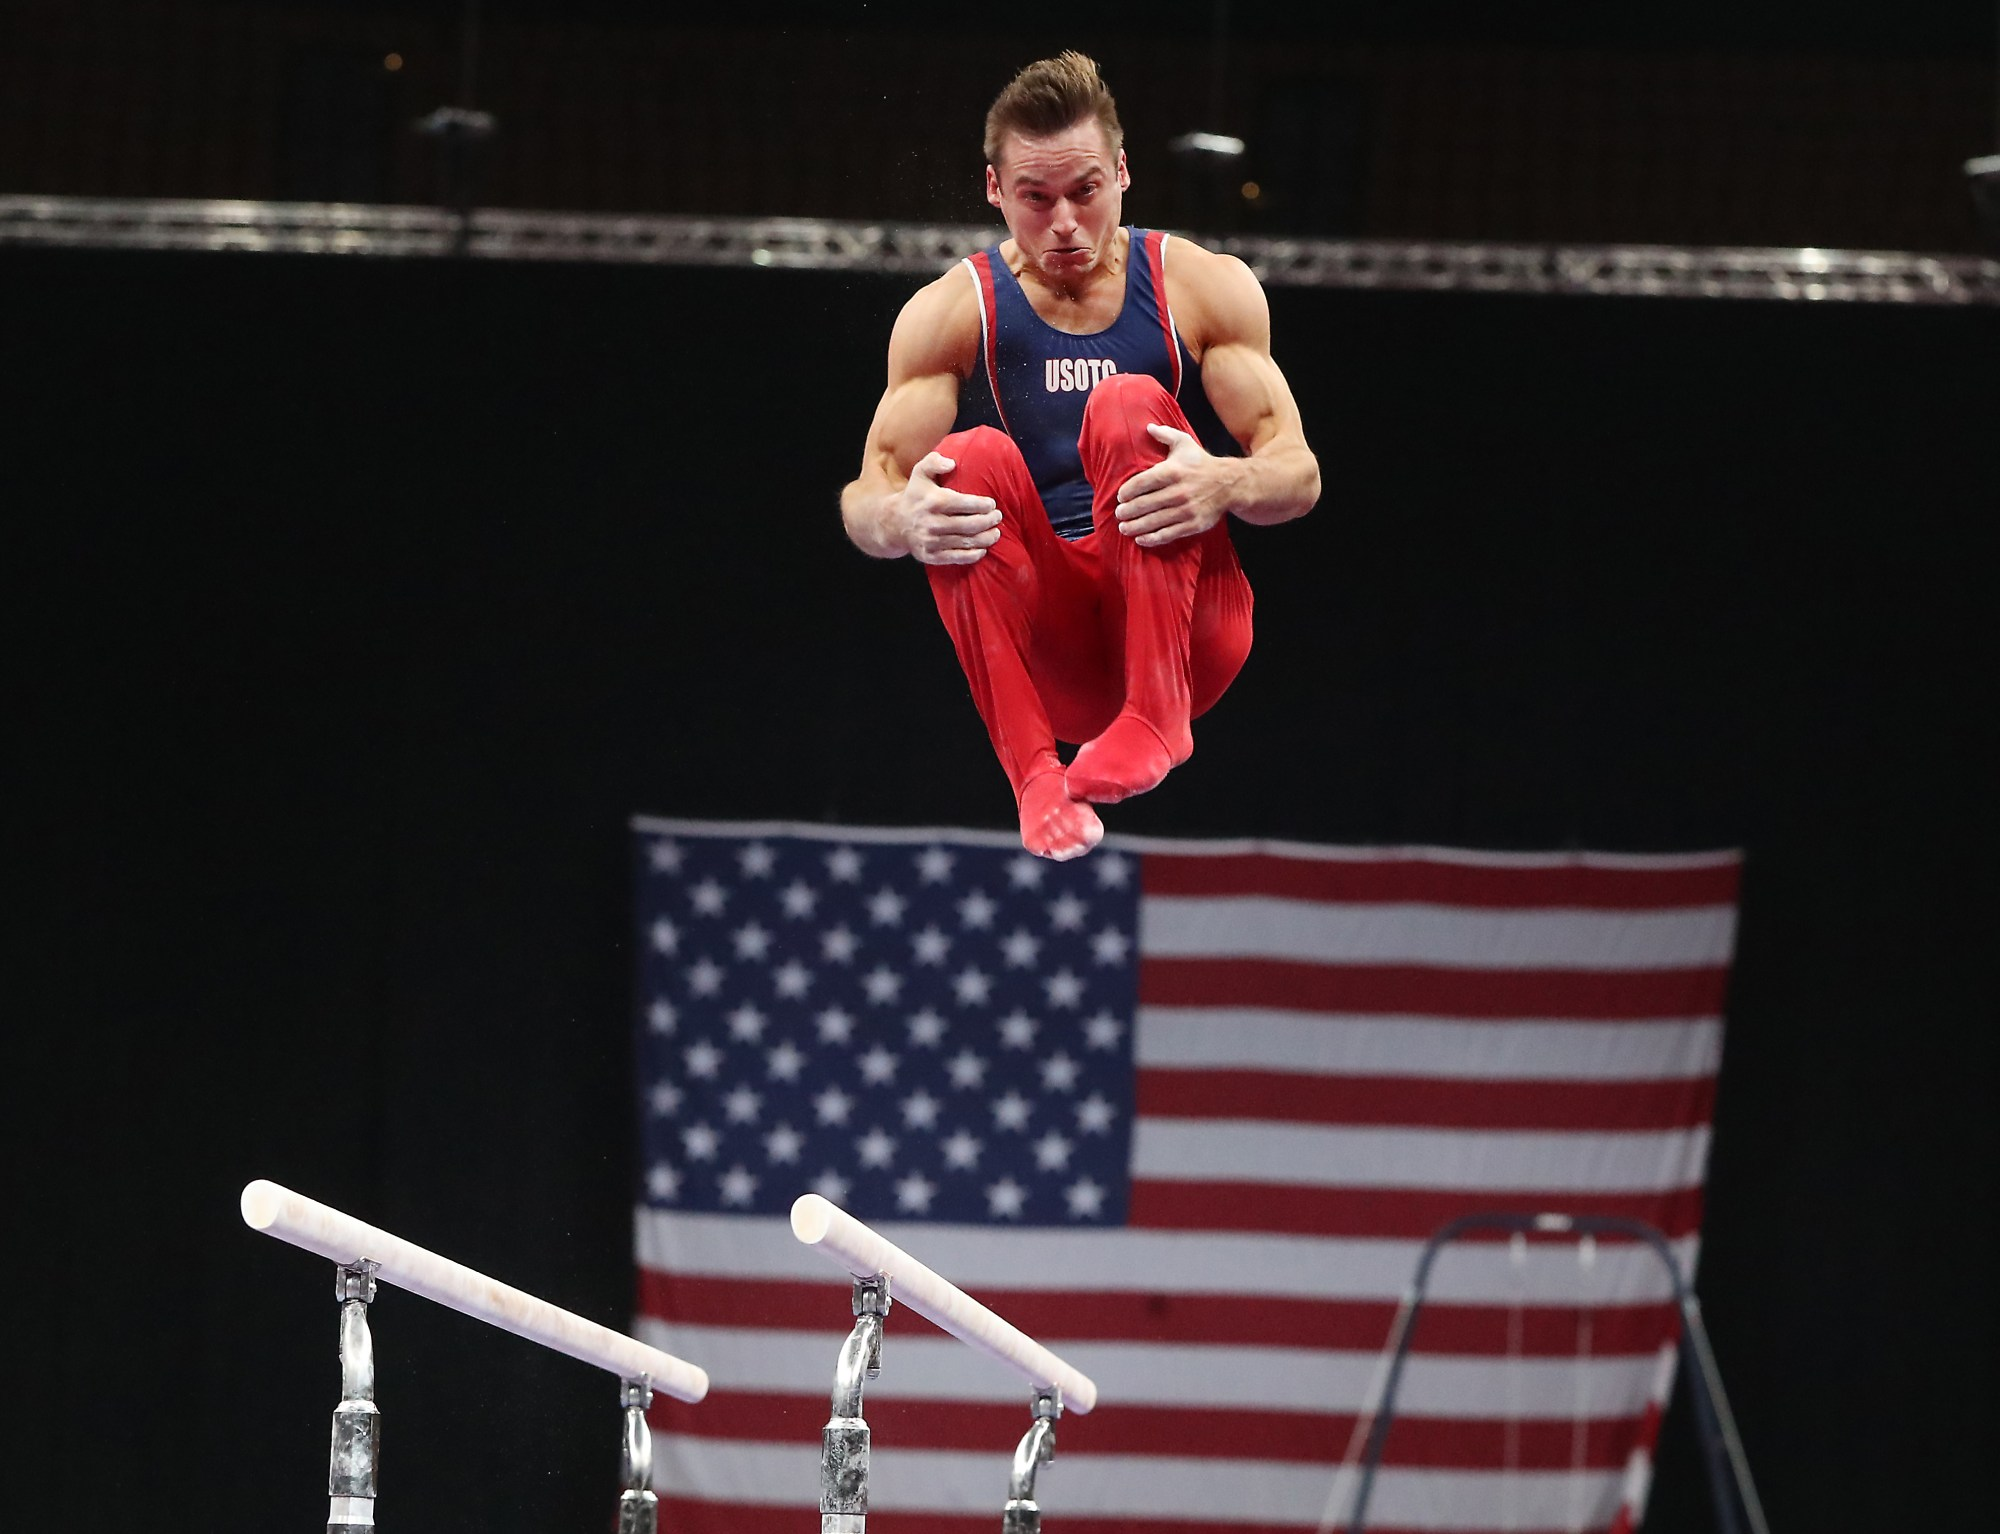 hight resolution of when it comes to injuries gymnasts don t want to hurt their chances the boston globe